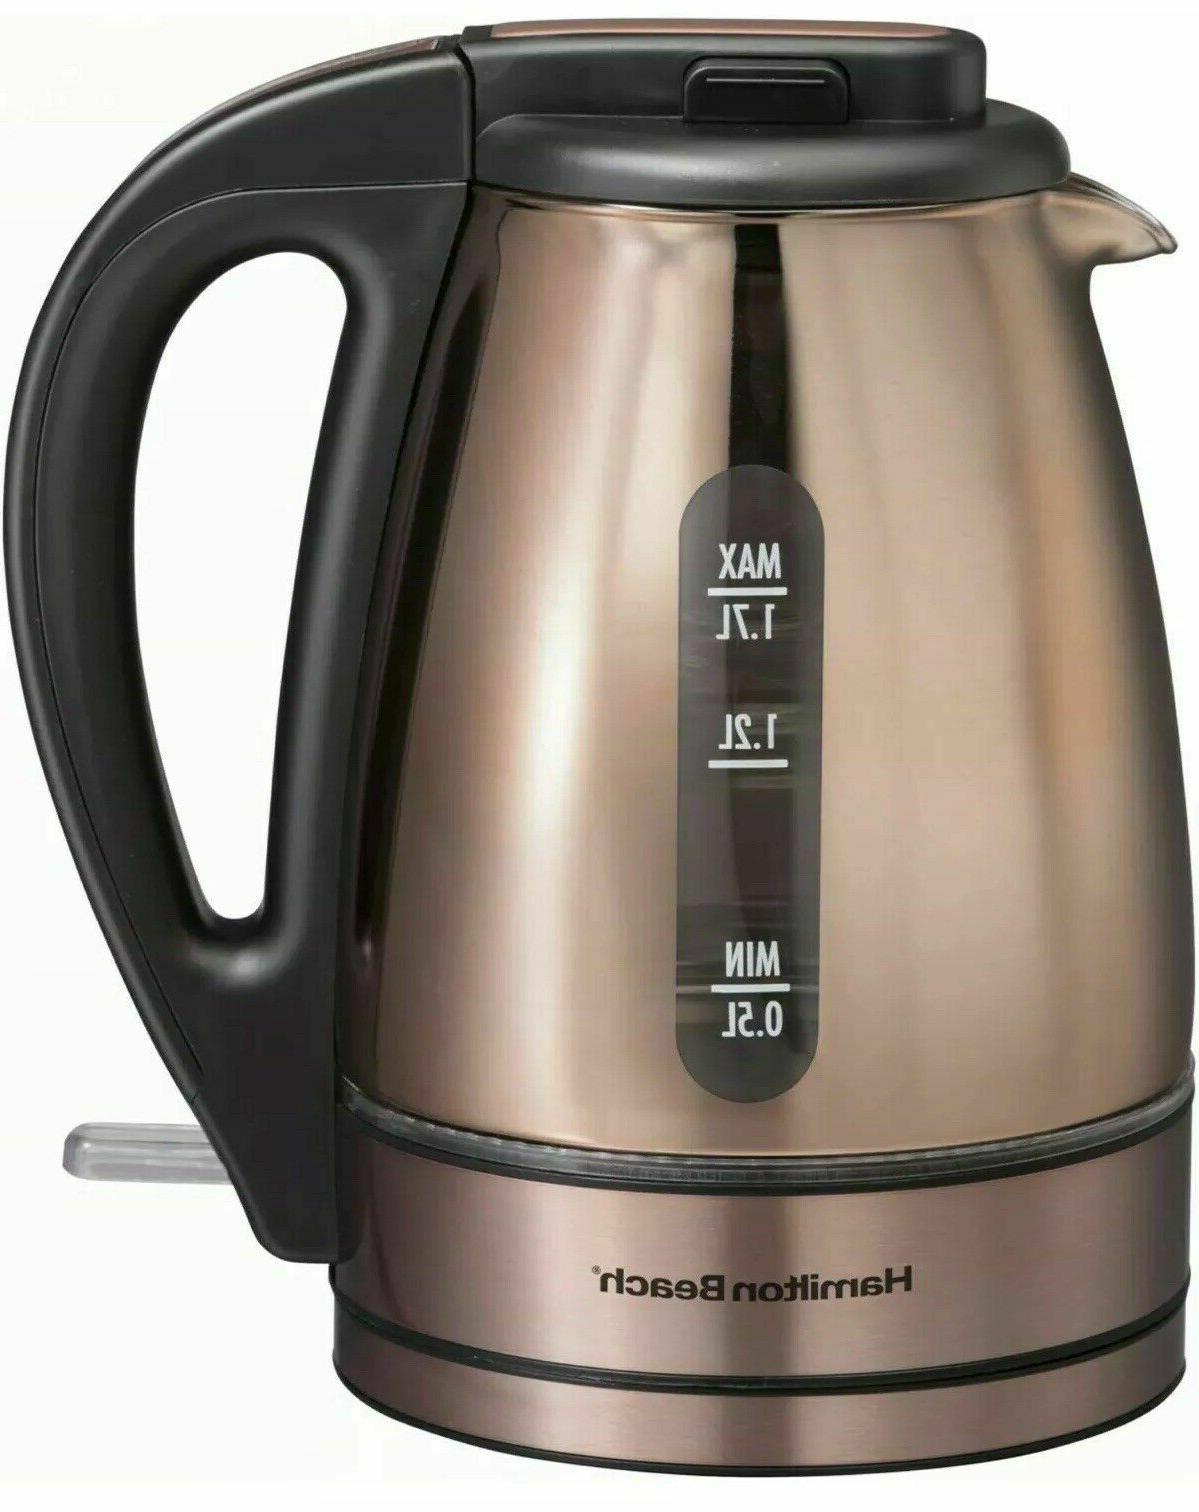 Hamilton 1.7 Liter Copper Plated Kettle,